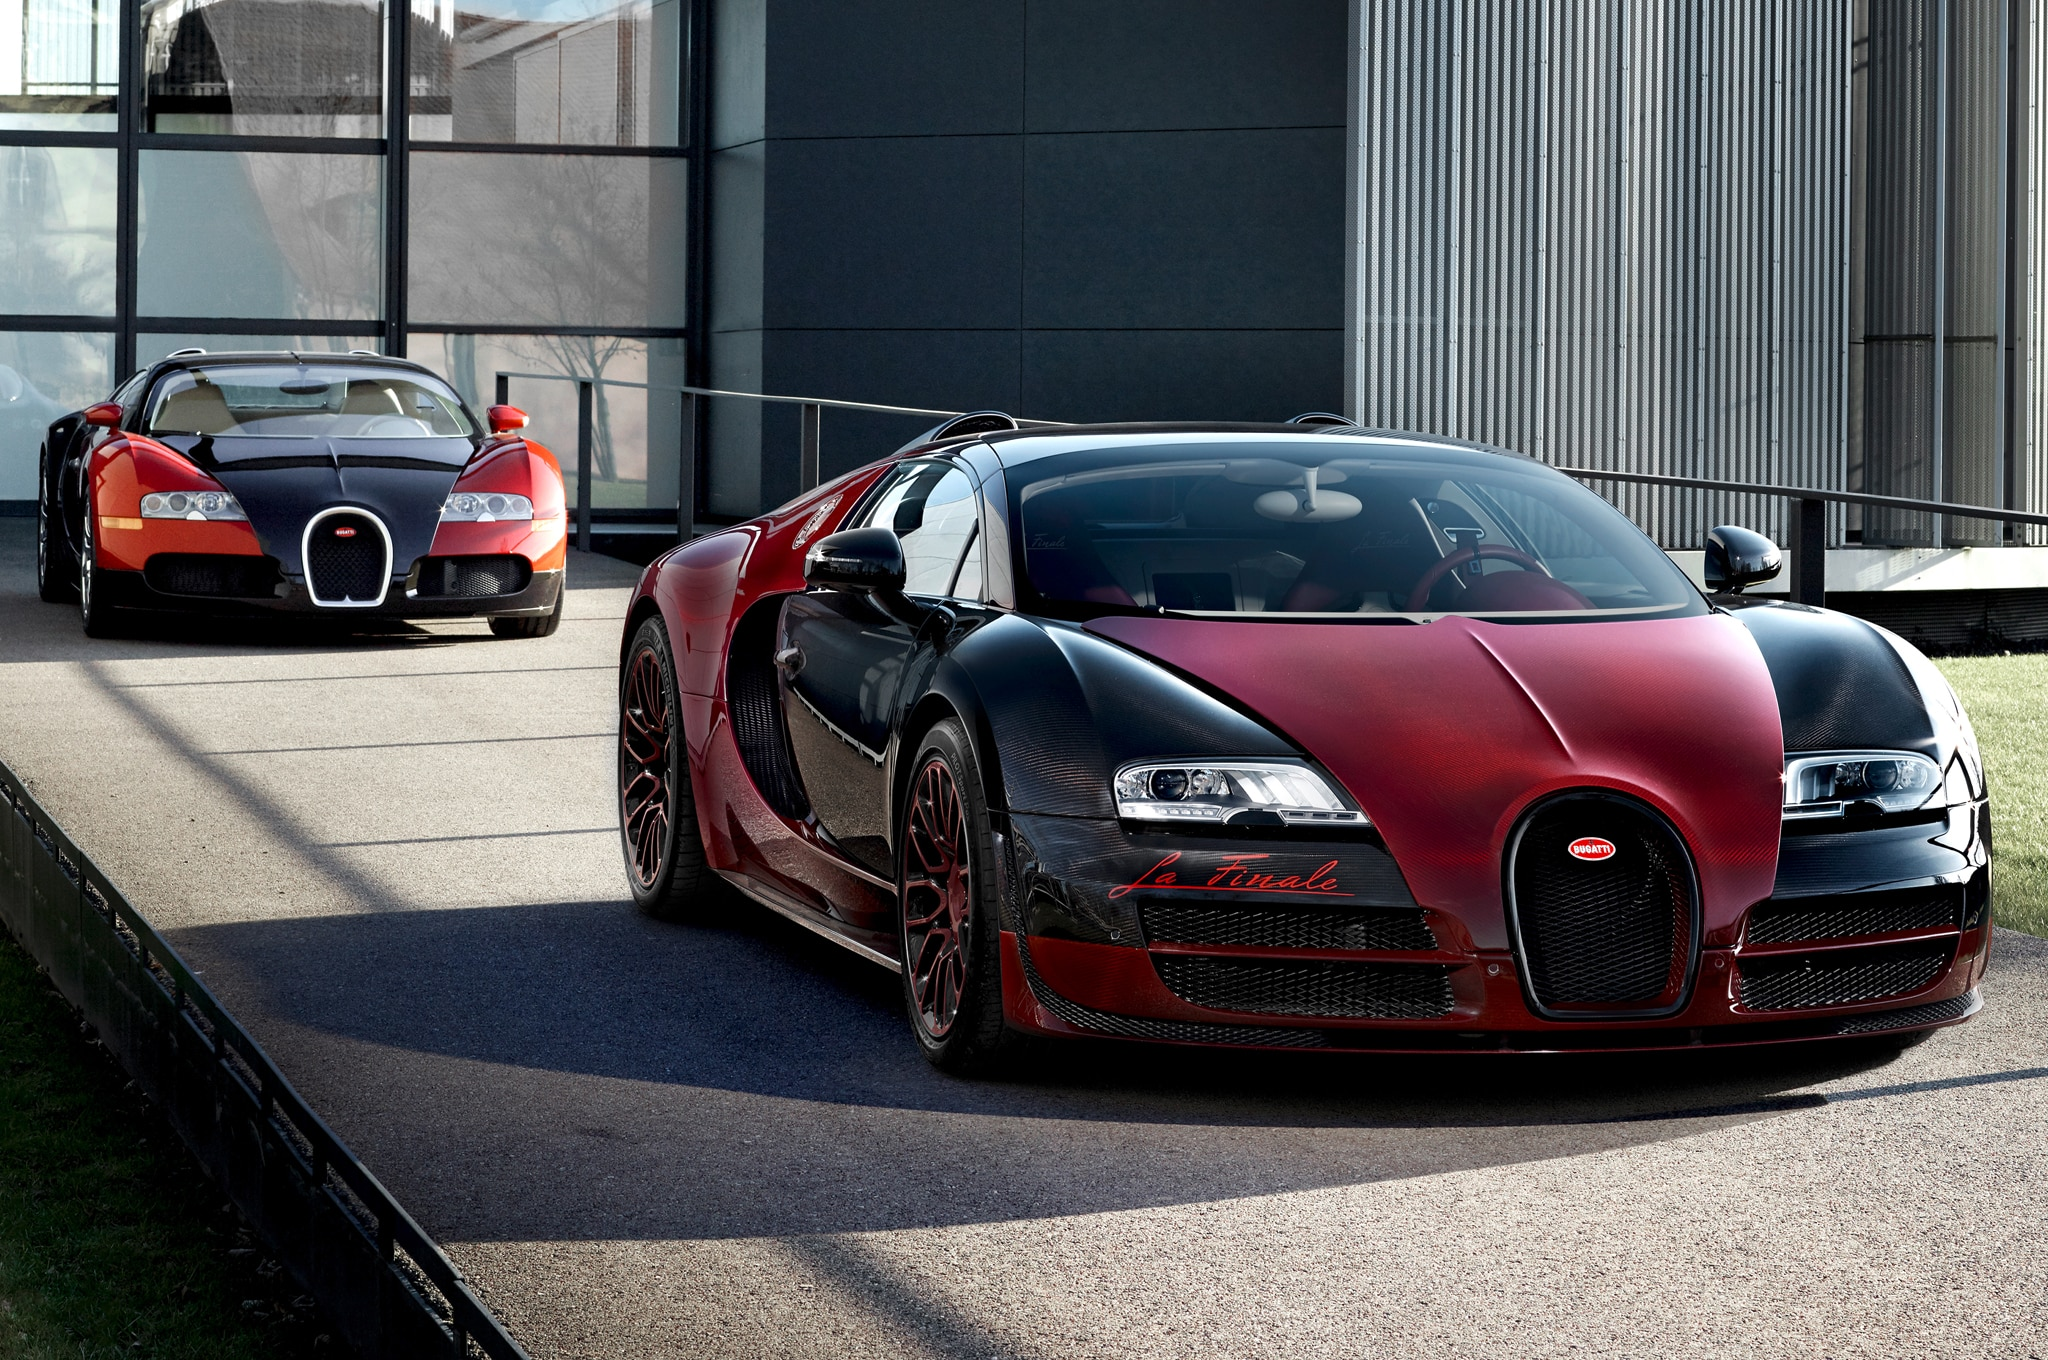 bugatti bids farewell to veyron with one off la finale edition. Black Bedroom Furniture Sets. Home Design Ideas